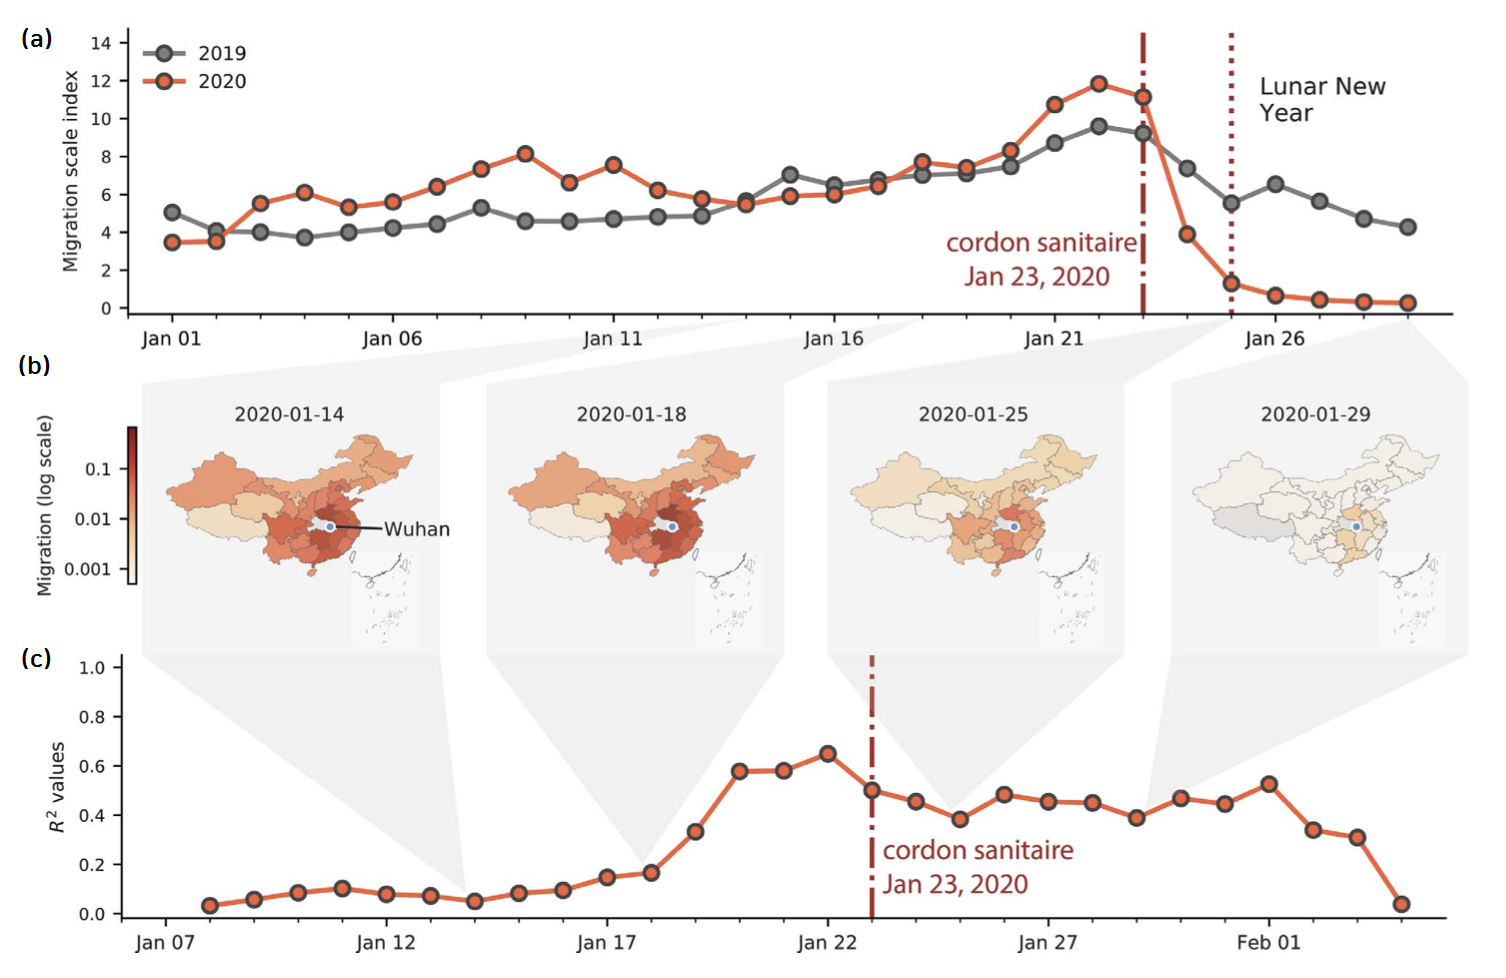 Fig. 3. Mobility and spread of COVID-19 during January, 2020 in China (Fig. 2 in Ref. [24]). (a) Human mobility record provided by Baidu Inc., which shows a dramatic drop after January 23, 2020 (red line) - when travel restriction is started - compared to the same time in 2019 (grey line). (b) Relative movements of people from Wuhan to other regions in China. (c) Correlation of daily positive cases between Wuhan and other regions, weighted by mobility scale.